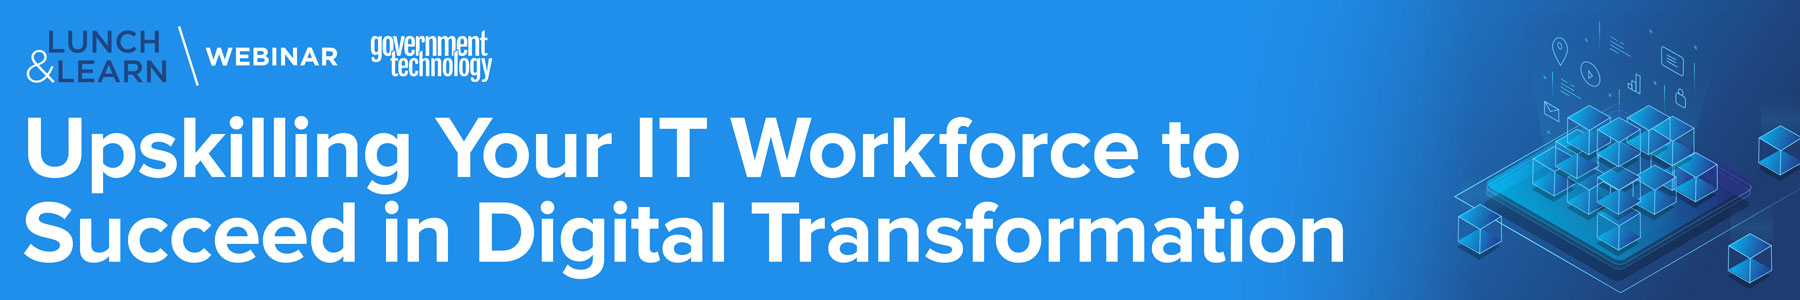 Upskilling Your IT Workforce to Succeed in Digital Transformation